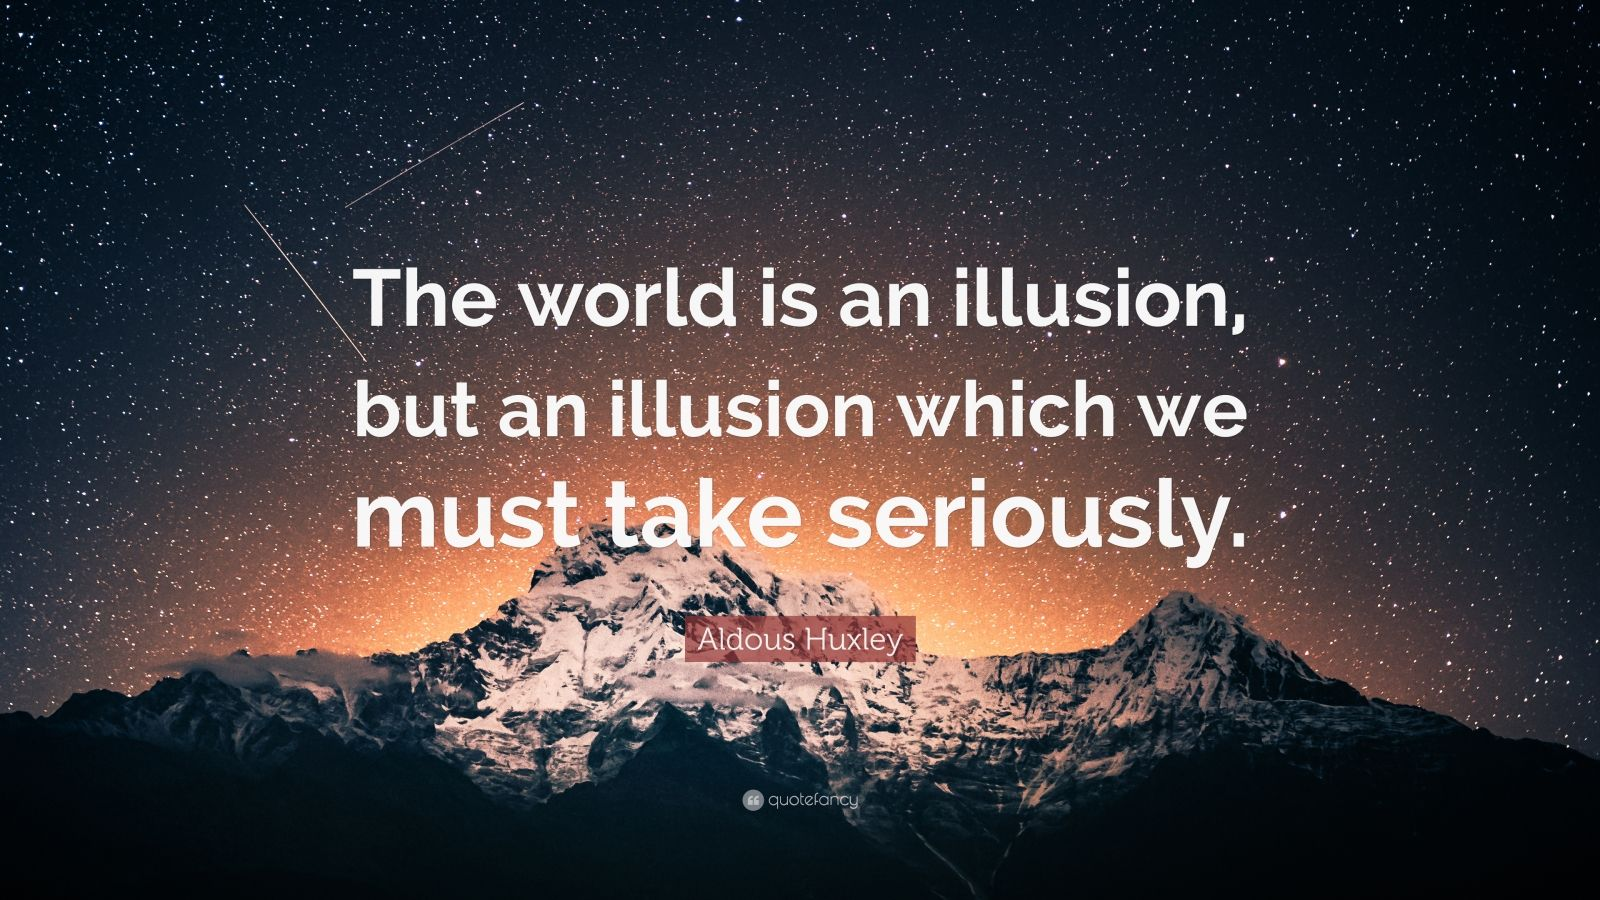 """Aldous Huxley Quote: """"The world is an illusion, but an illusion which we must take seriously."""""""